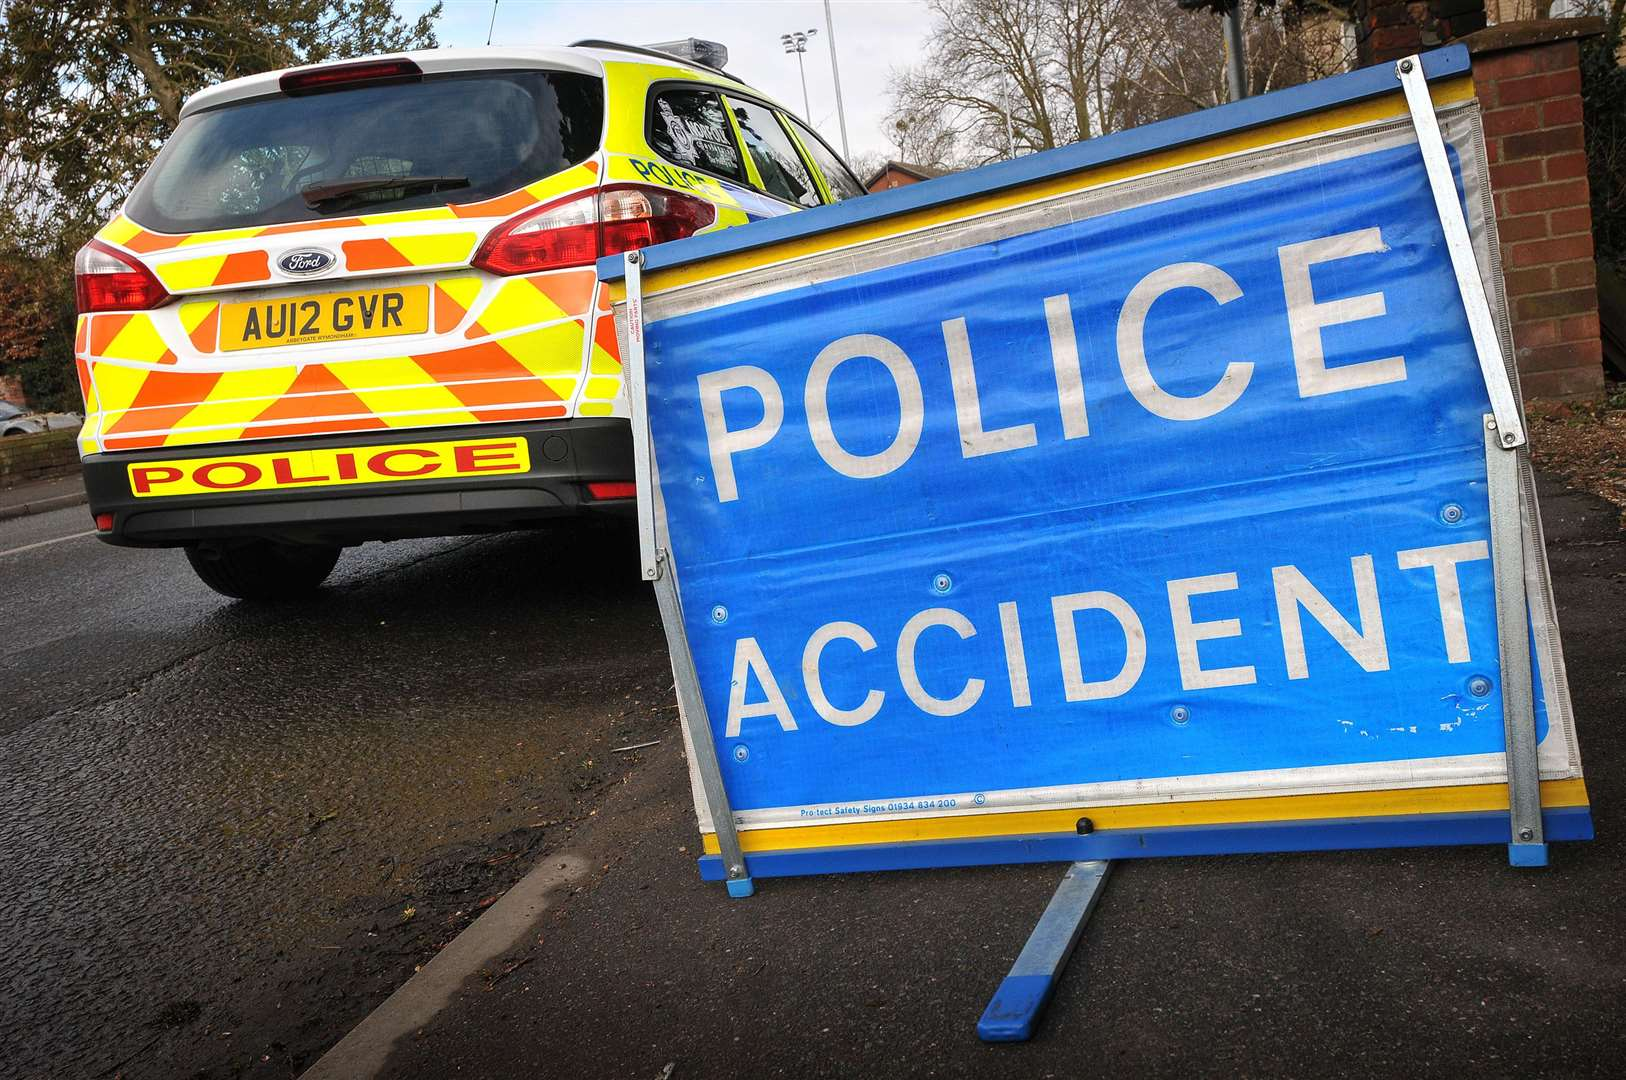 Two people had to be cut from their cars after a serious crash on the A1152 near Woodbridge.